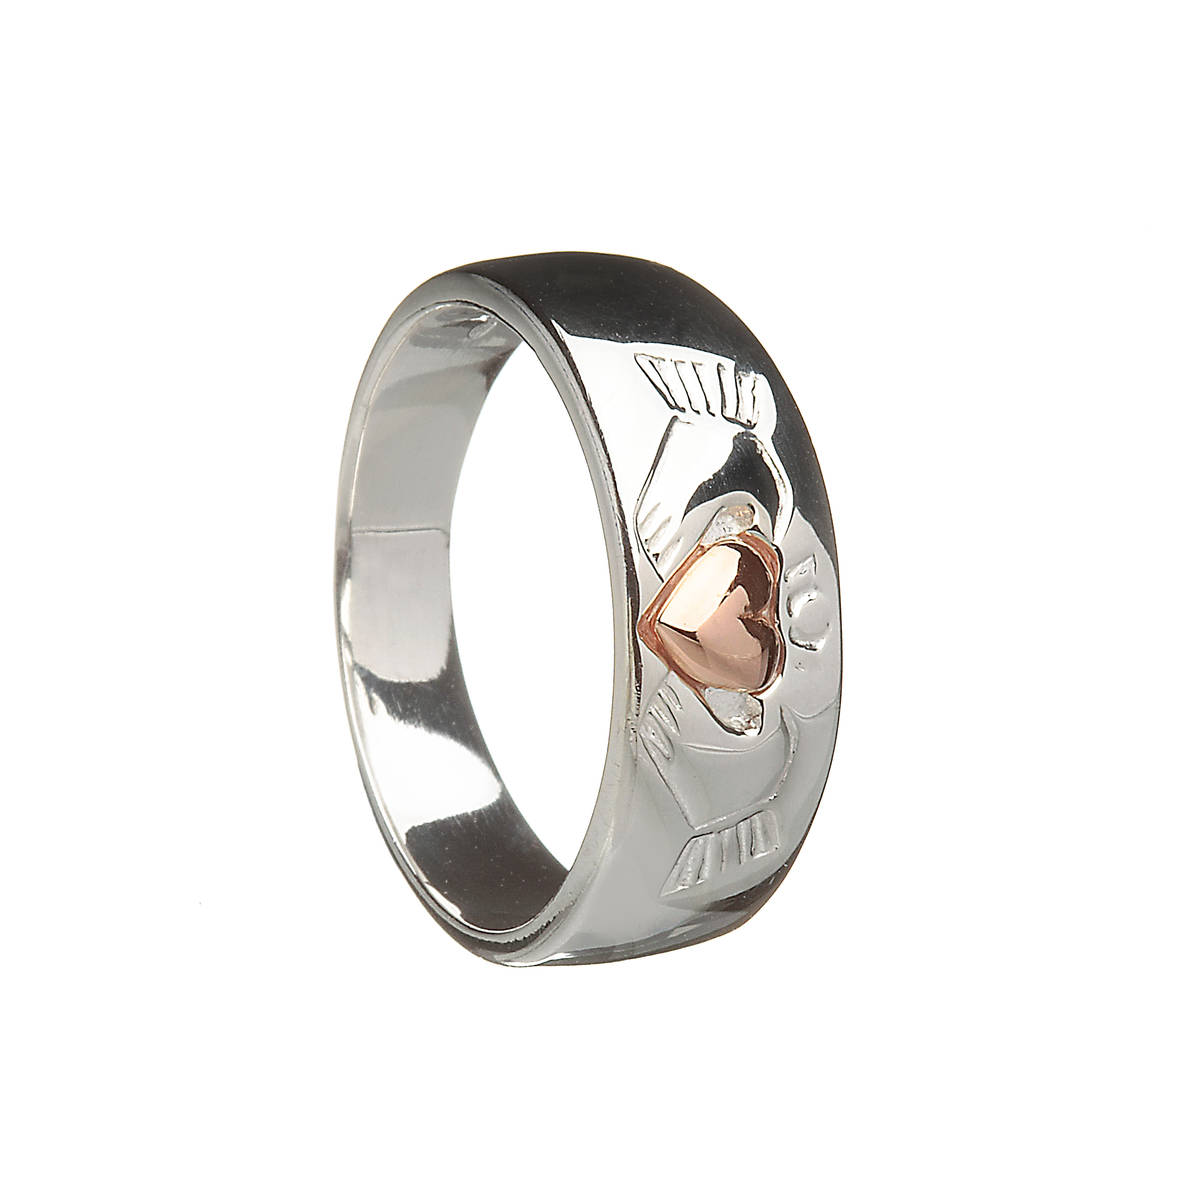 Silver ladies claddagh ring with rose gold plated heart